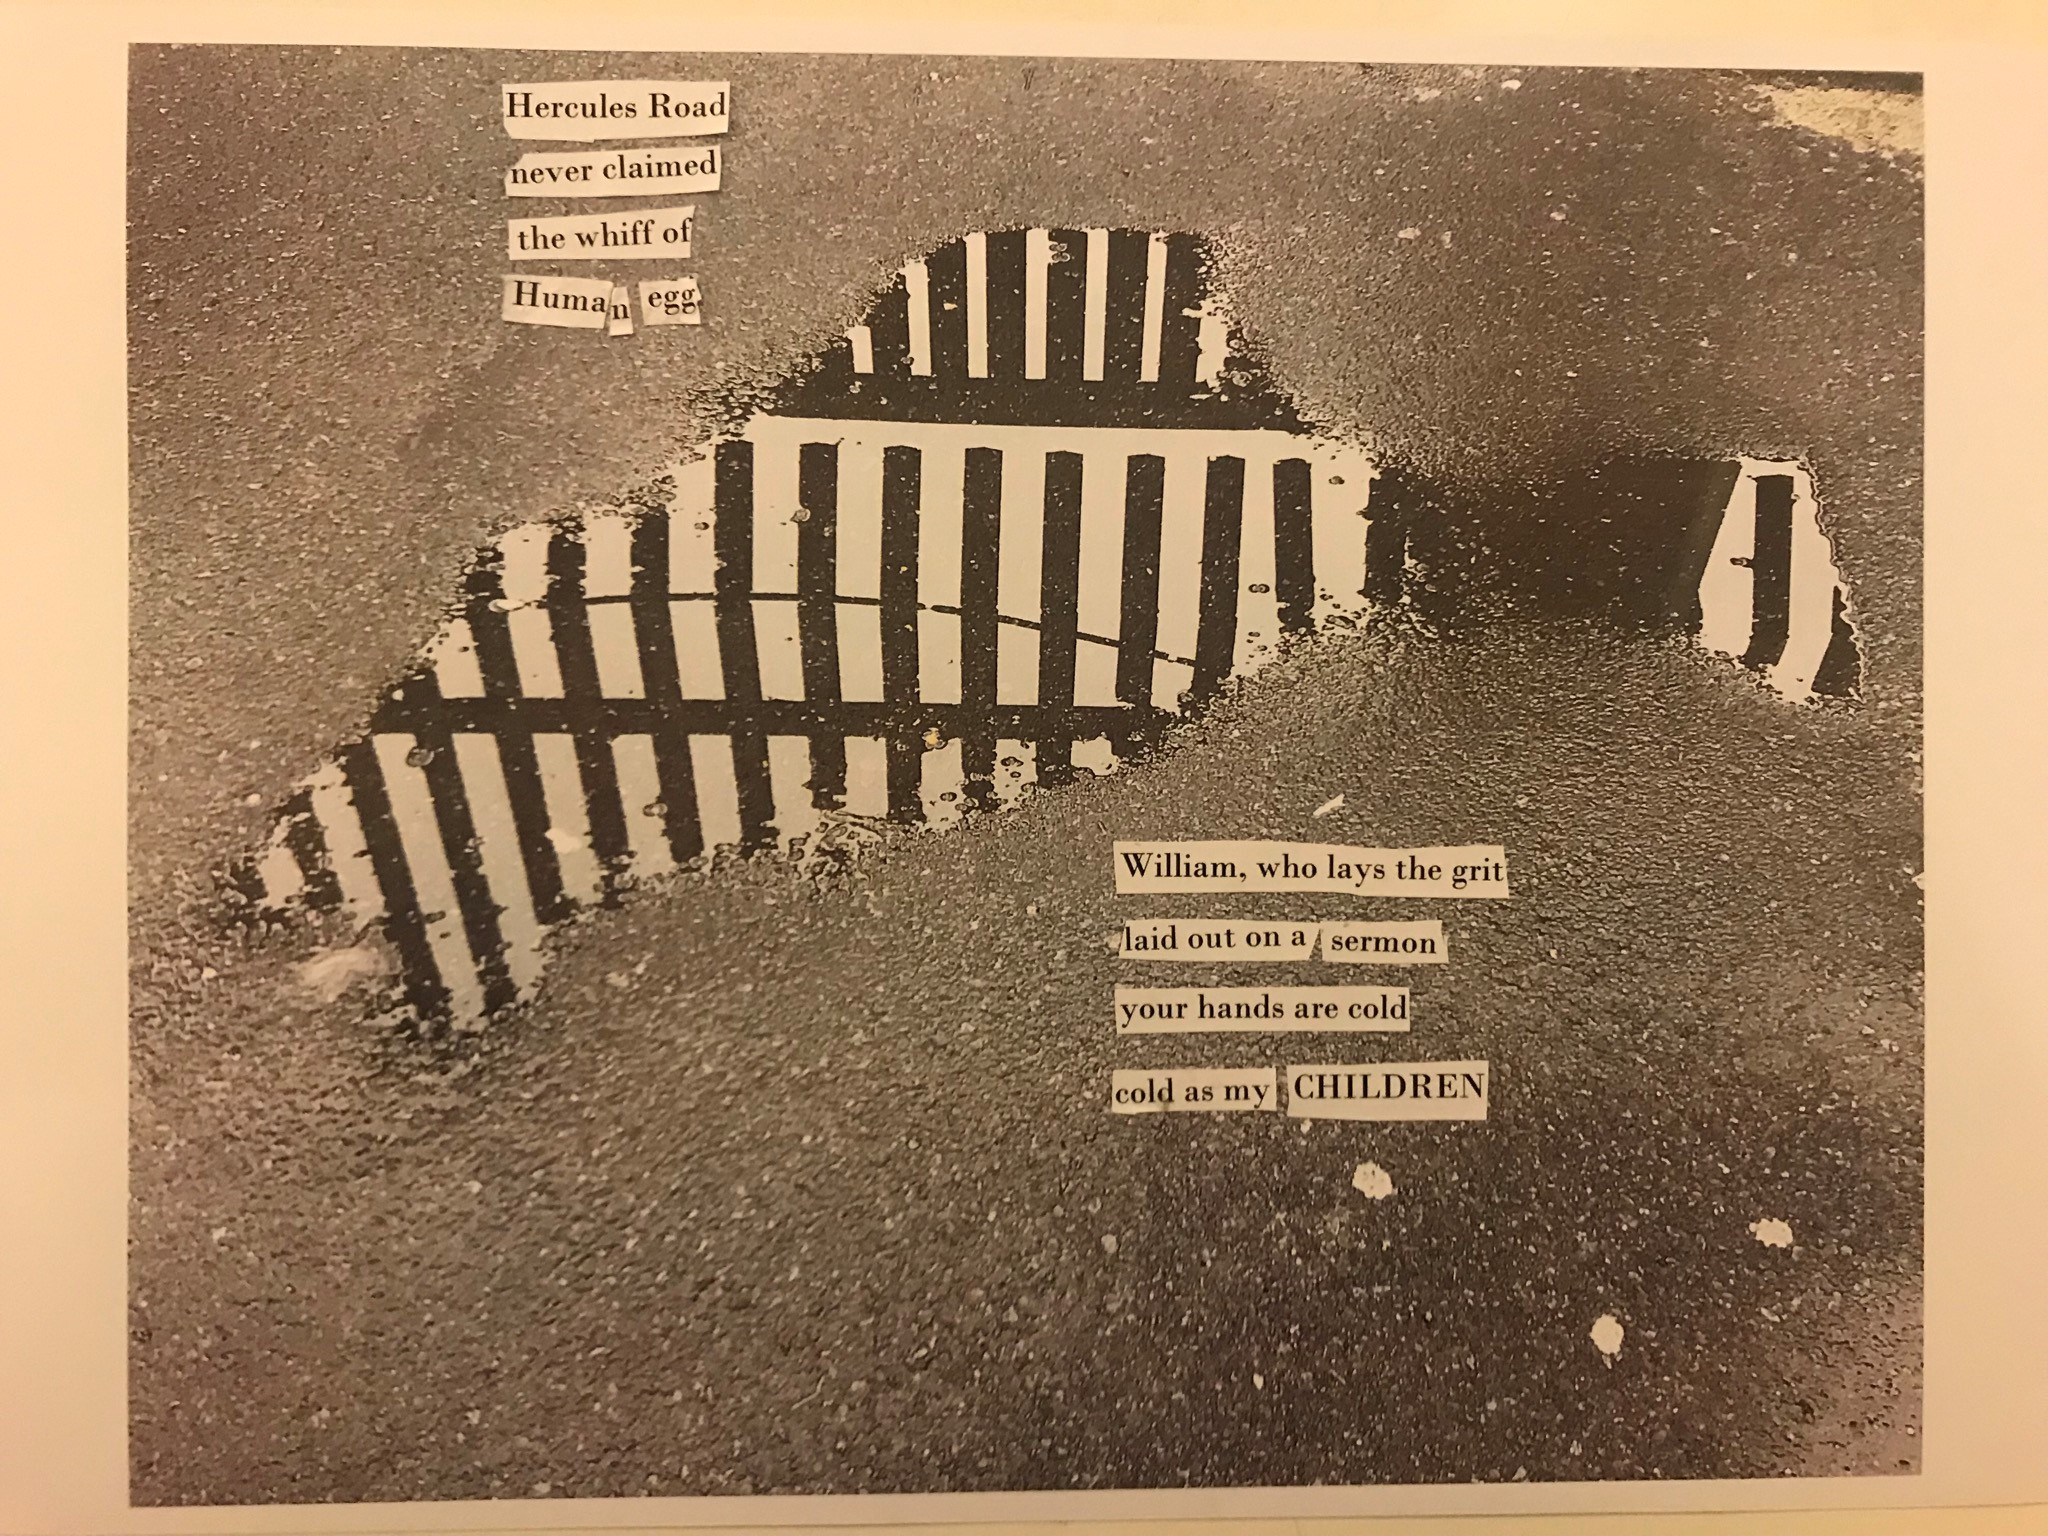 """collage: speckled dark background overlaid with a cut out of a photo of a fence and found text reading: """"Hercules Road never claimed the whiff of human egg"""" in the top left and bottom right: """"William, who lays the grit, laid ot on a sermon, your hands are cold, cold as my CHILDREN"""""""